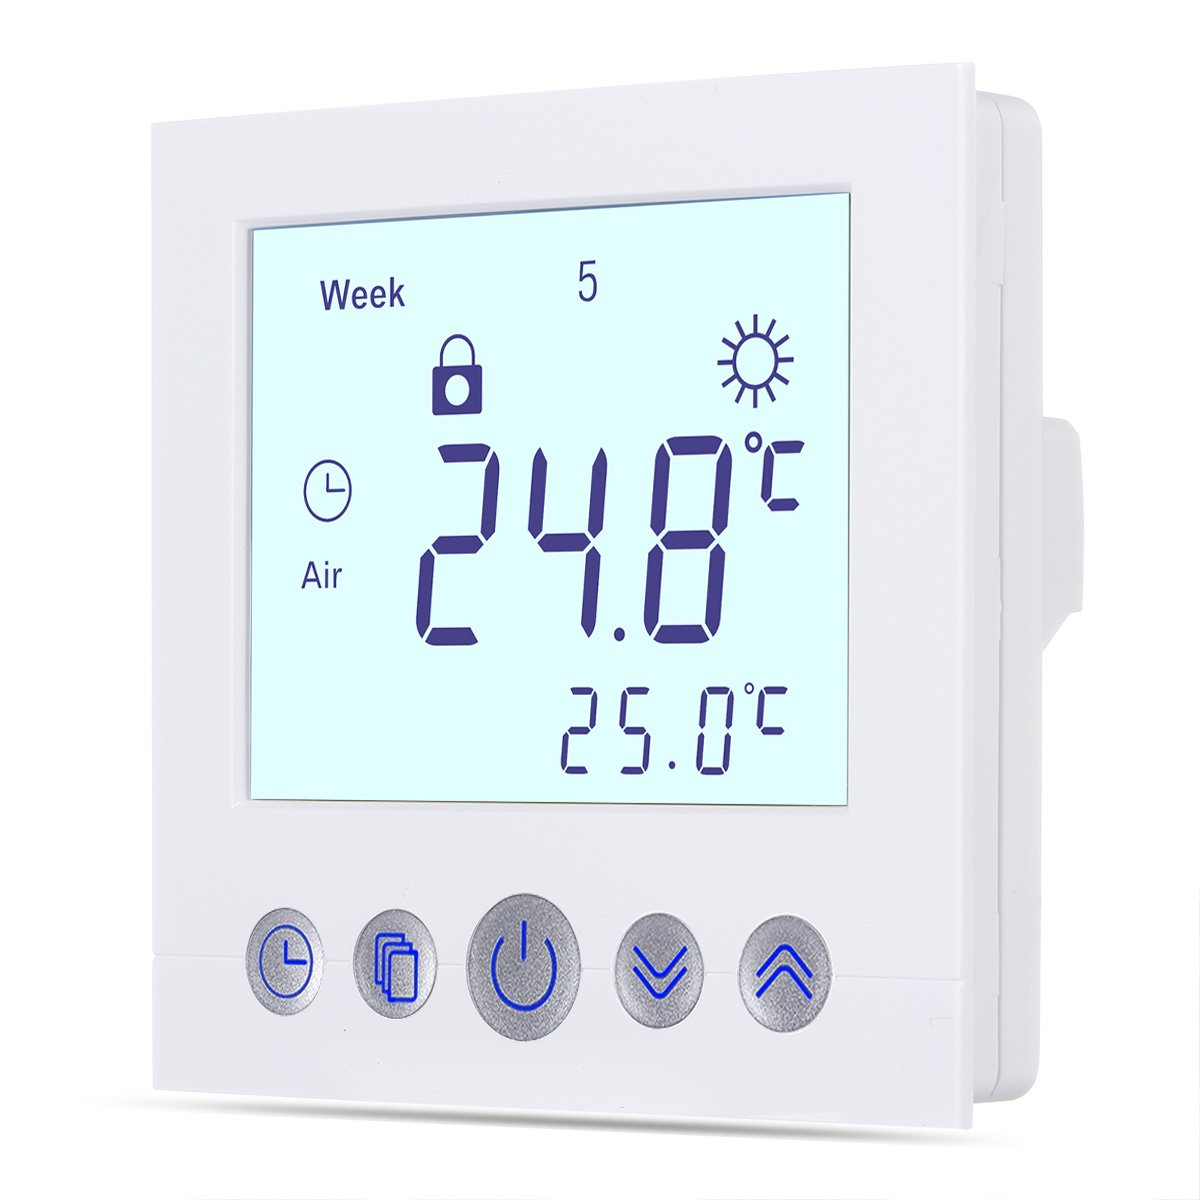 FLOUREON Underfloor Heating Thermostat Central Heating thermostats Room Thermostat 230V 3A Programmable Temperature Controller 5+ 2/6+ 1 / 7days with Large LCD Screen